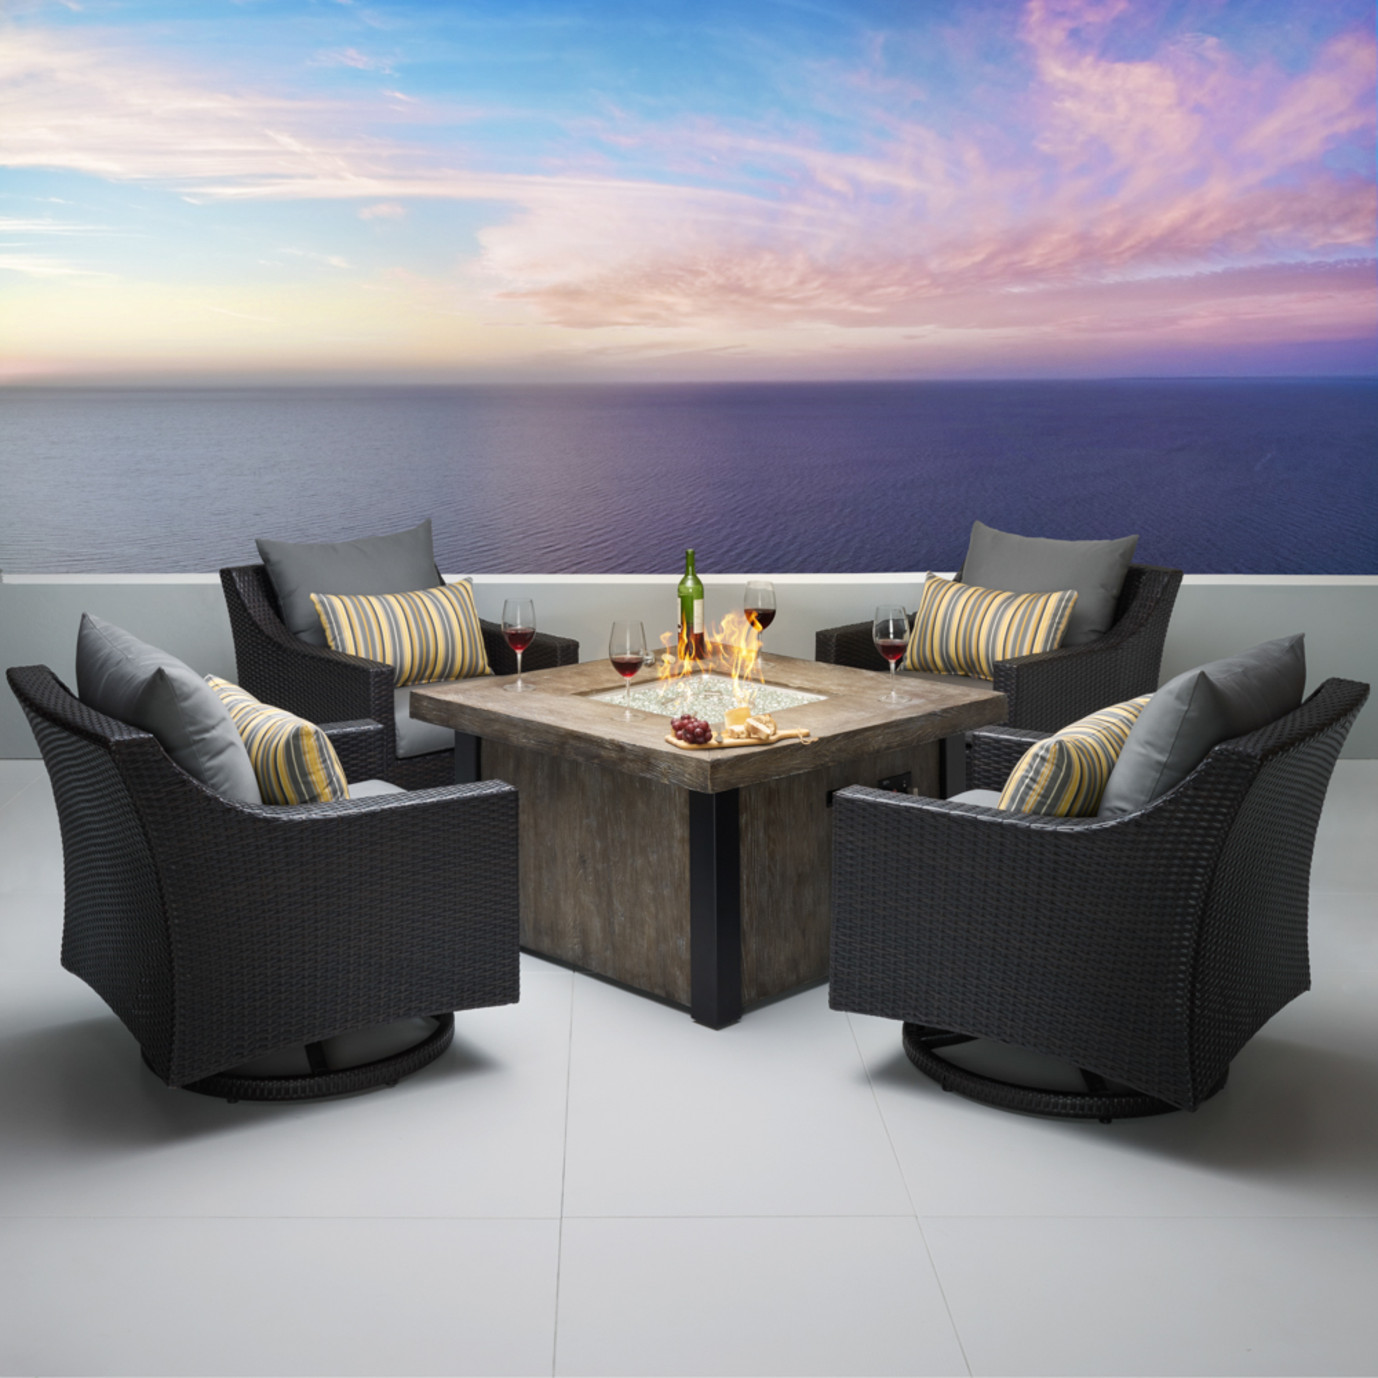 Deco™ 5pc Motion Fire Chat Set - Charcoal Gray